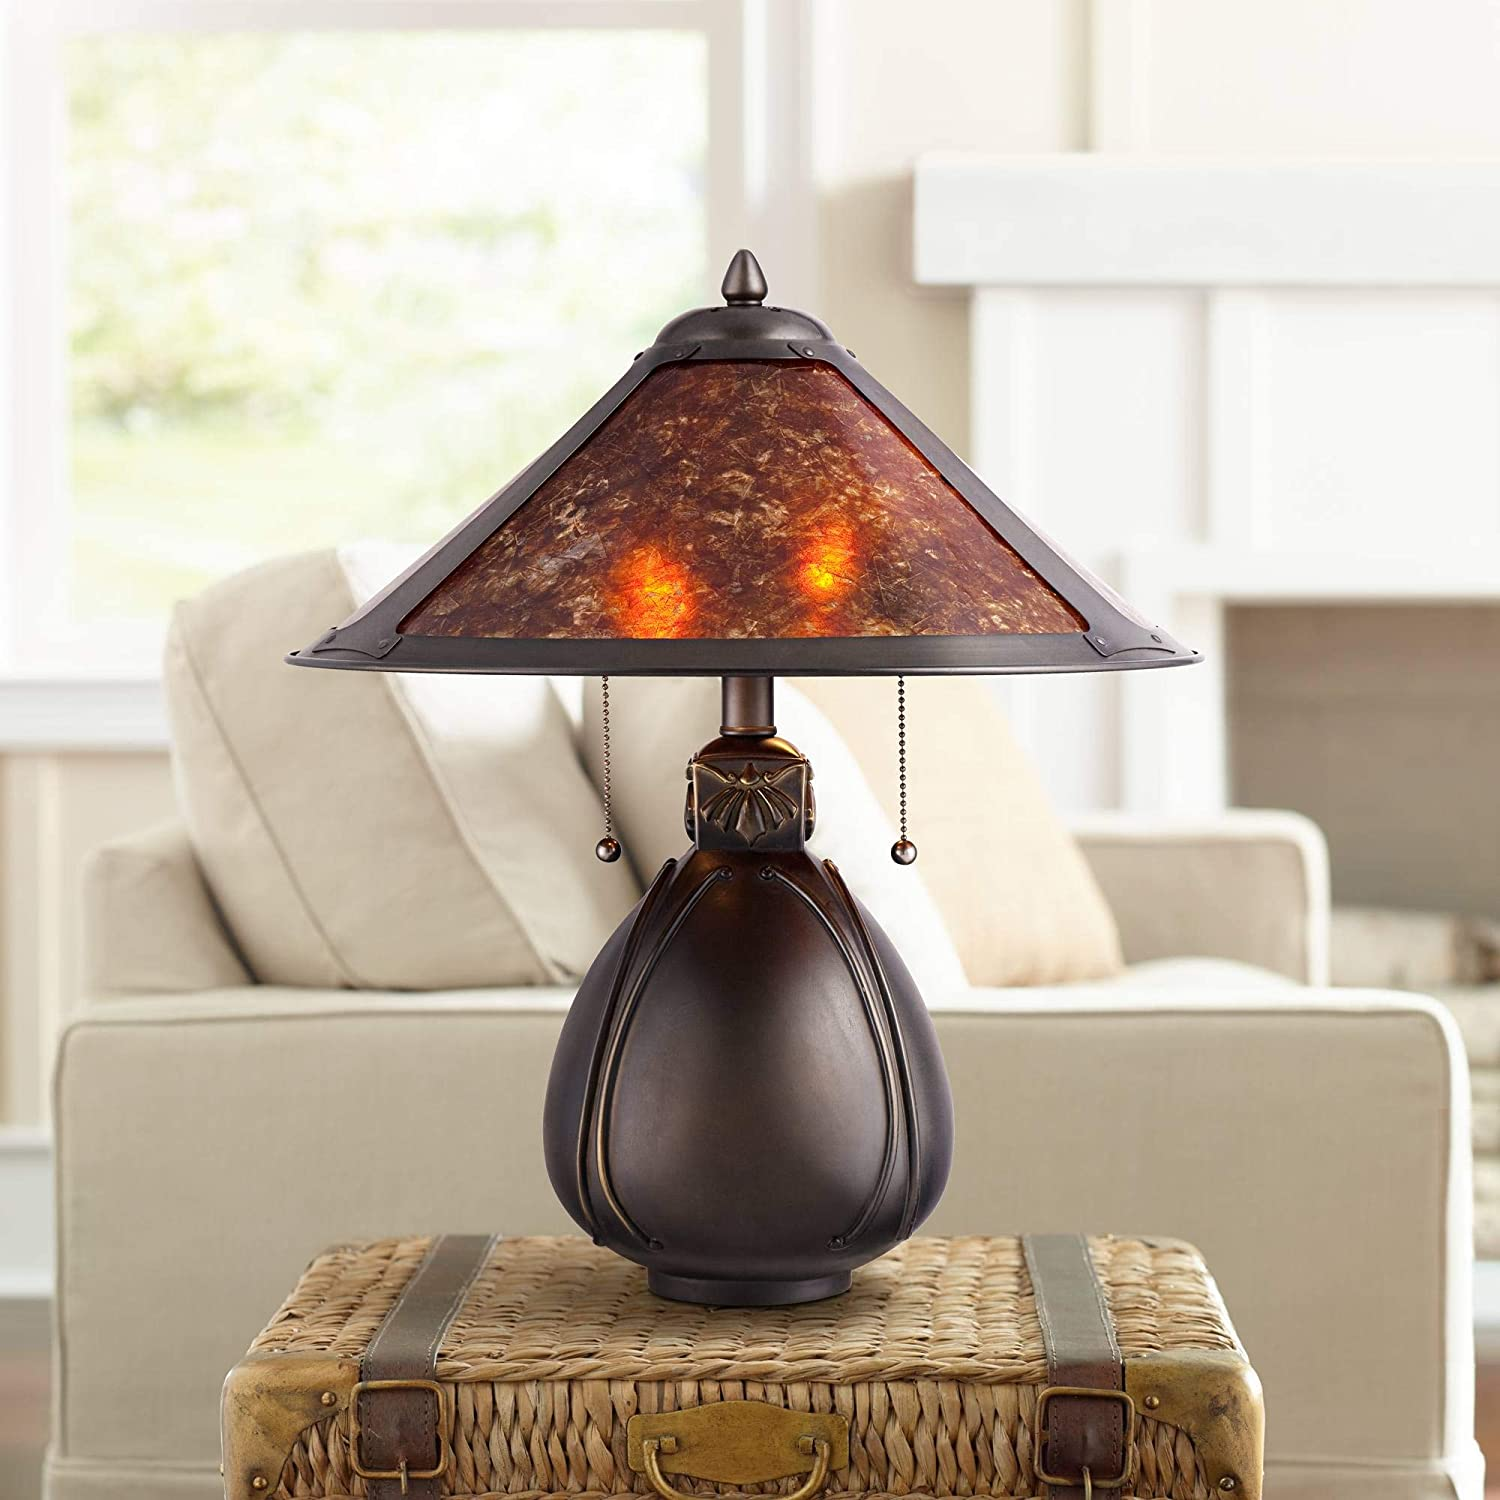 Nell Arts and Crafts Pottery Mica Shade Table Lamp